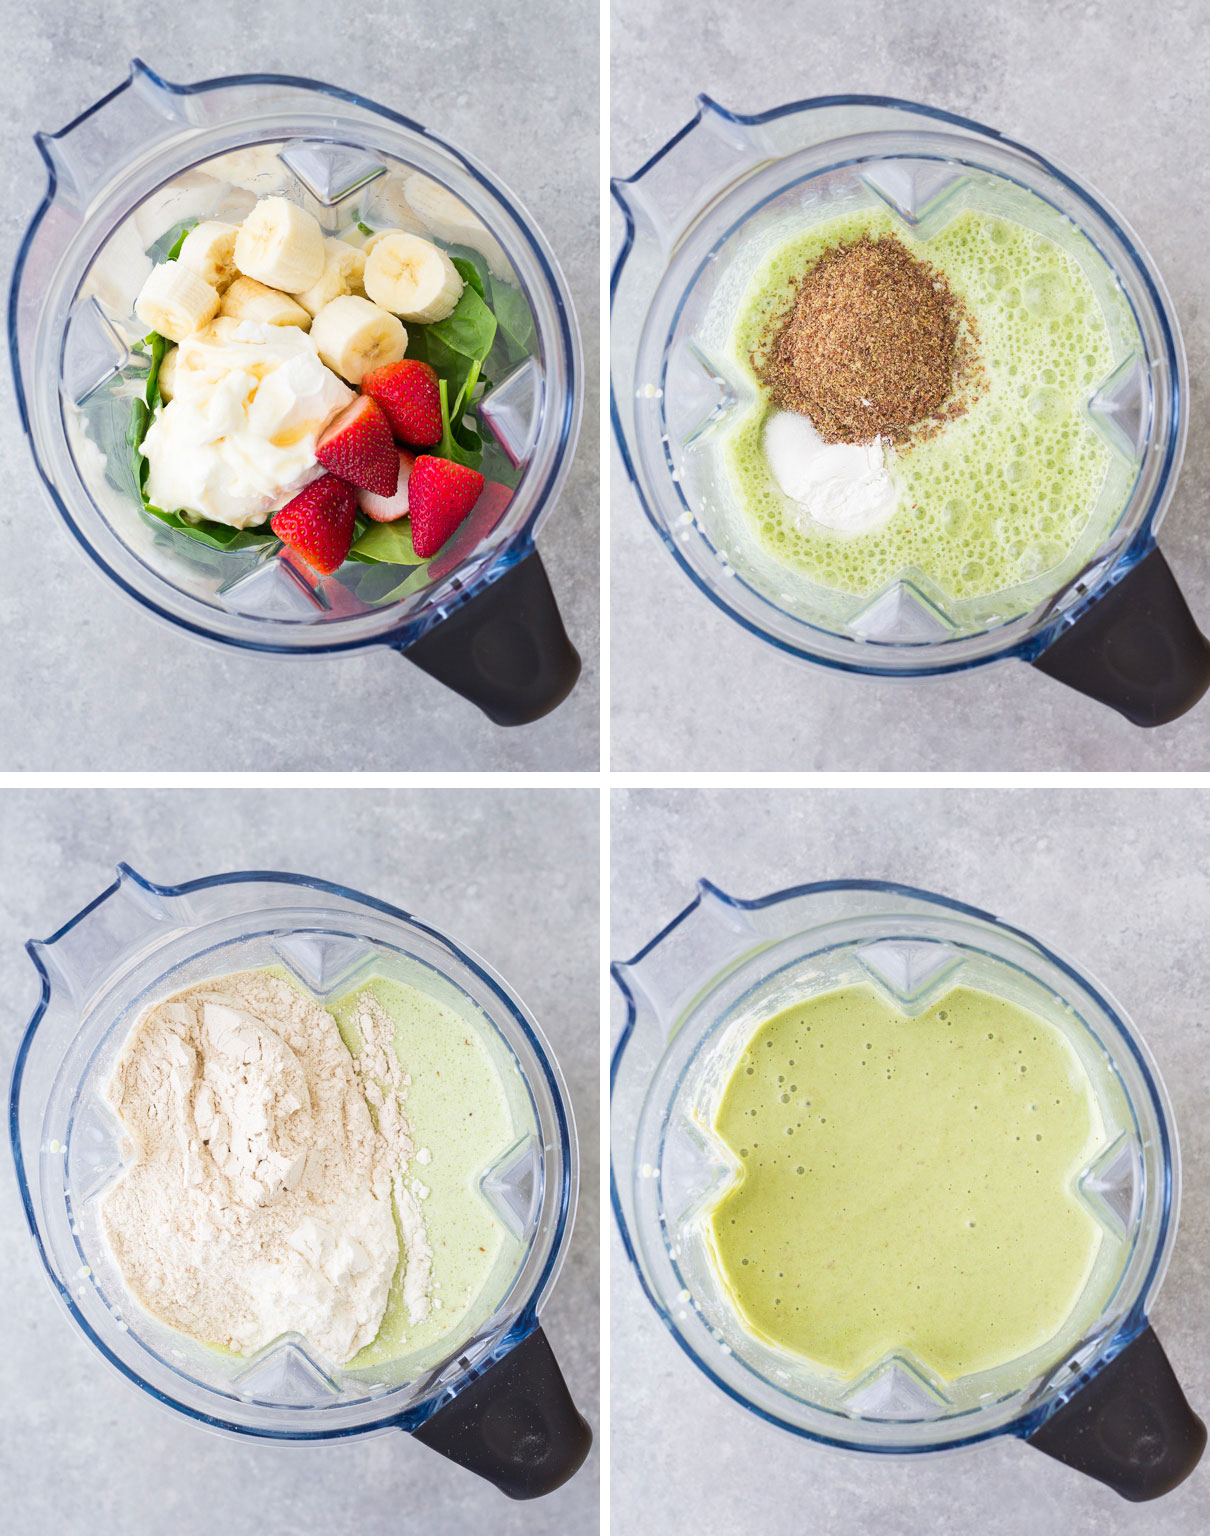 These Blender Green Smoothie Waffles are a fun way to get kids to eat their greens! The waffle batter is mixed up in a blender so they are really easy to make. The waffles turn out crisp on the outside with soft insides. The waffles have a hint of green smoothie flavor, with a little coconut and banana mixed in!